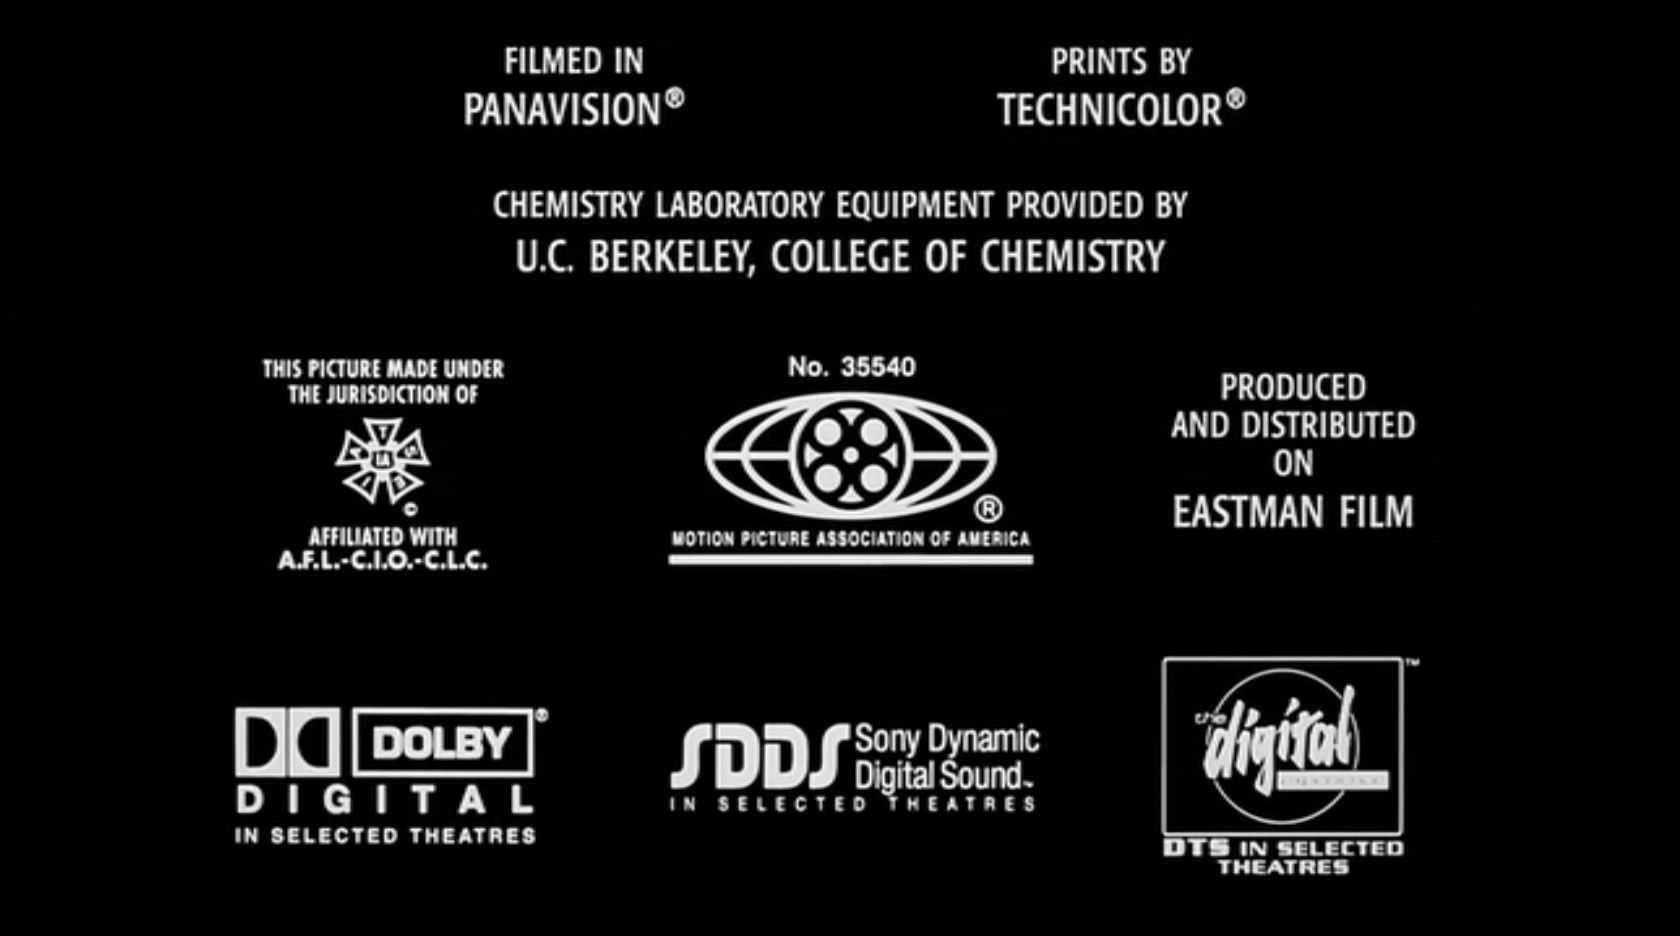 Prints By Deluxe Credits: Sony Dynamic Digital Sound/Other